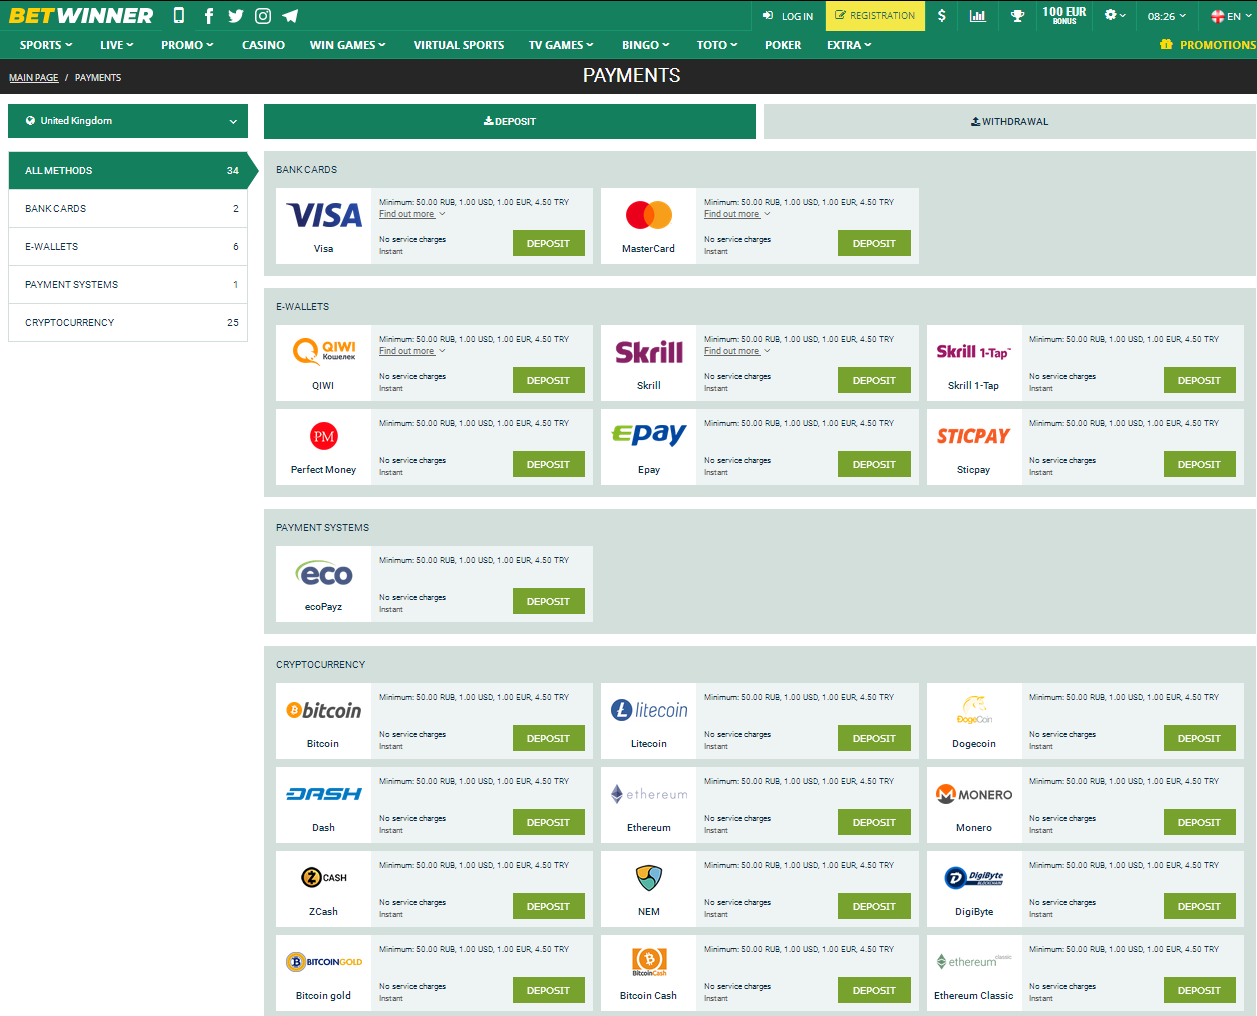 Payment Methods for UK